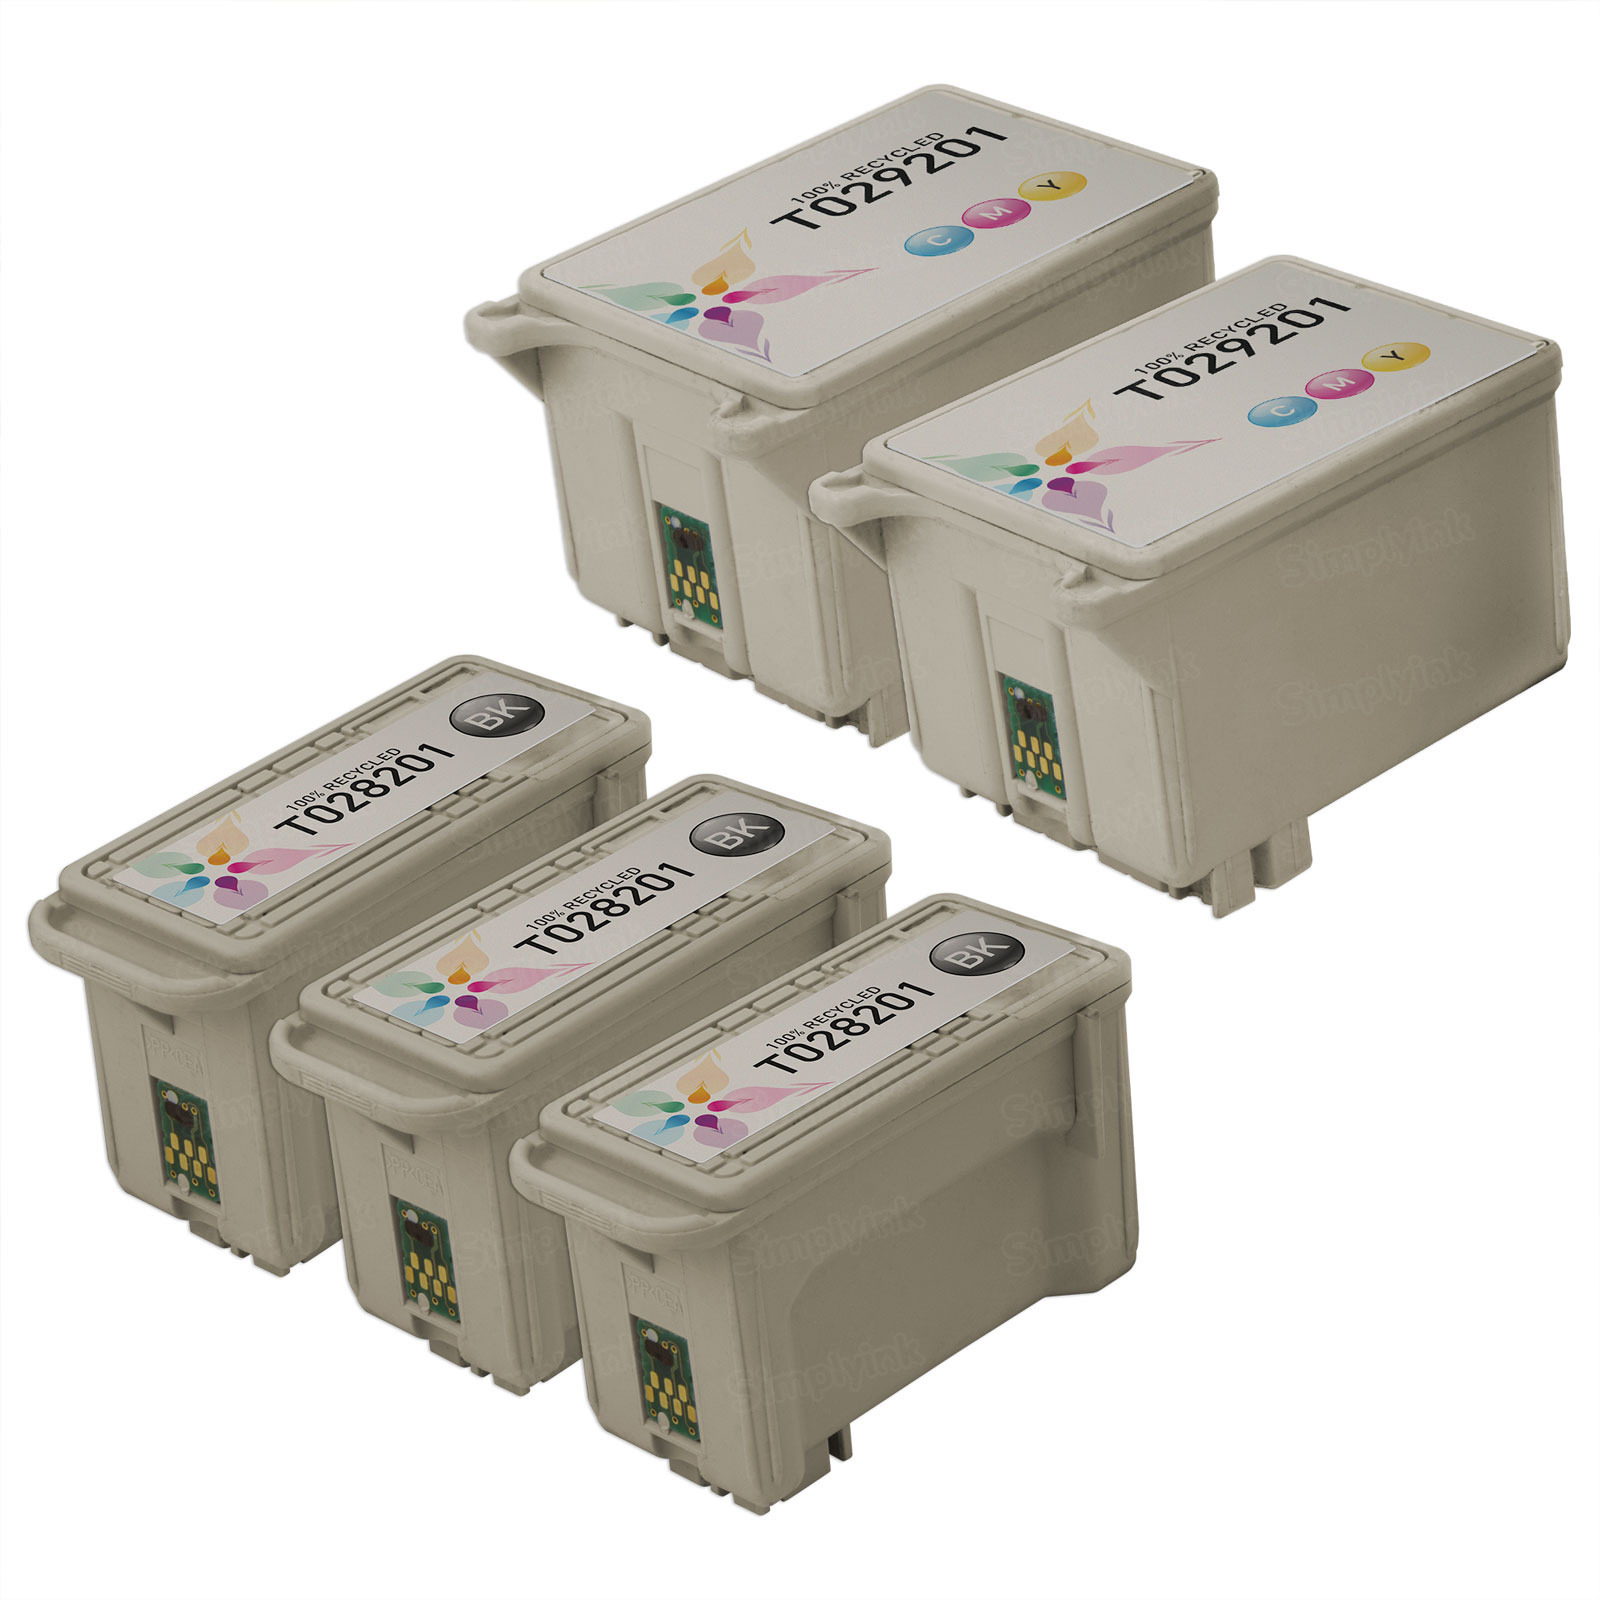 Inkjet Supplies for Epson Printers - Remanufactured Bulk Set of 5 Ink Cartridges 3 Black Epson T028201 (T028) and 2 Color Epson T029201 (T029)